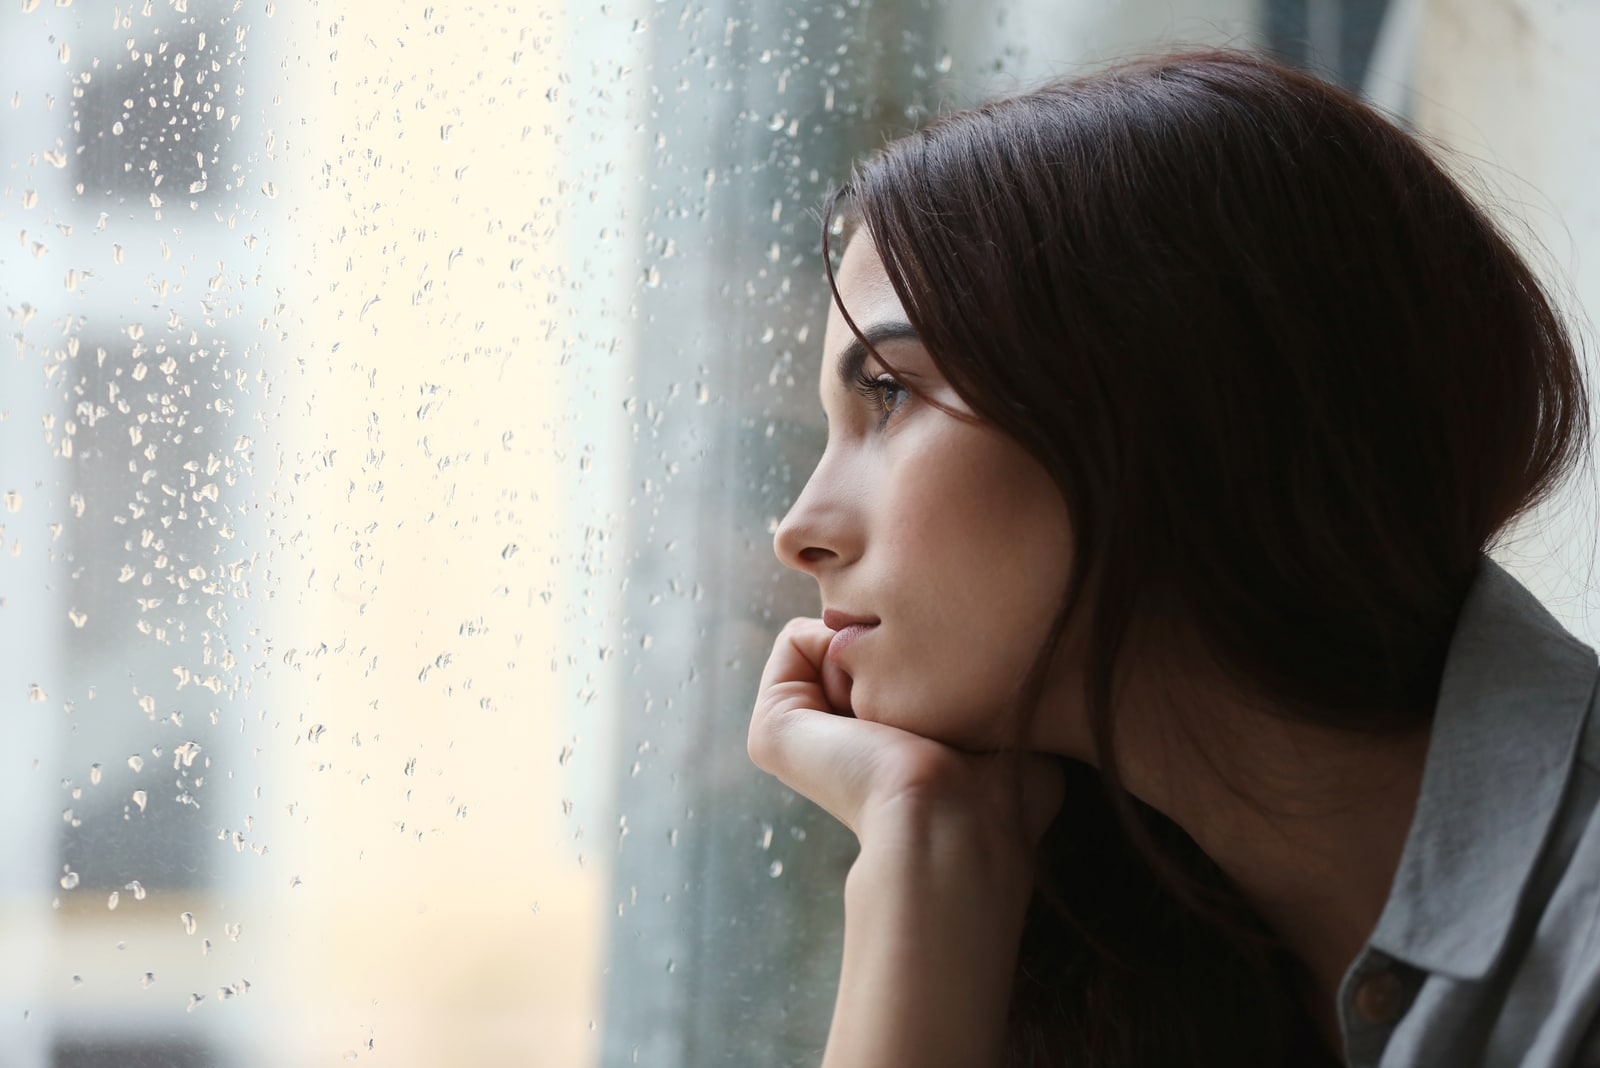 a disappointed woman looks out the window